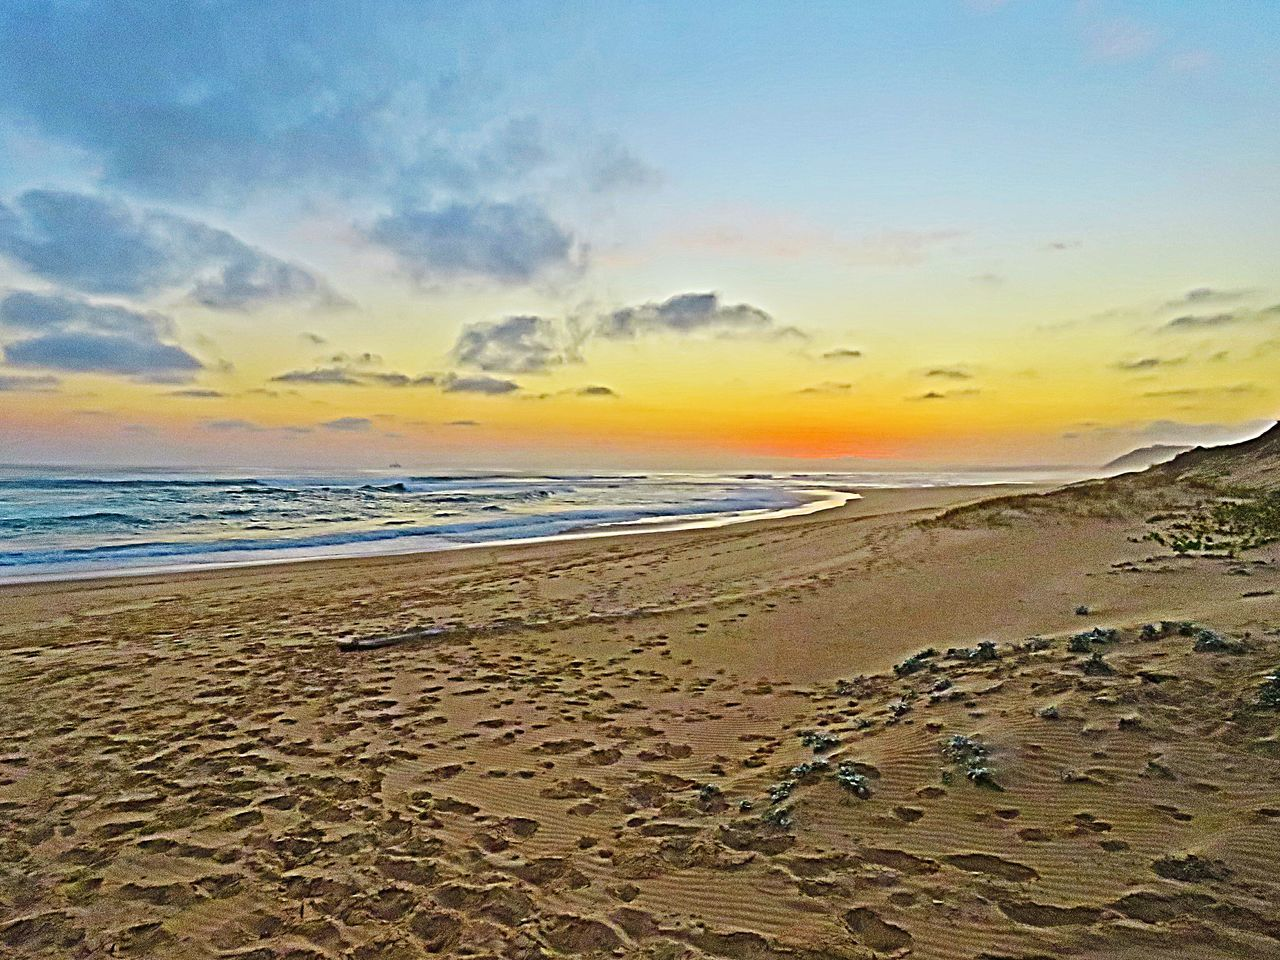 sand, beach, sea, scenics, nature, sunset, beauty in nature, sky, tranquility, tranquil scene, water, horizon over water, outdoors, no people, sand dune, day